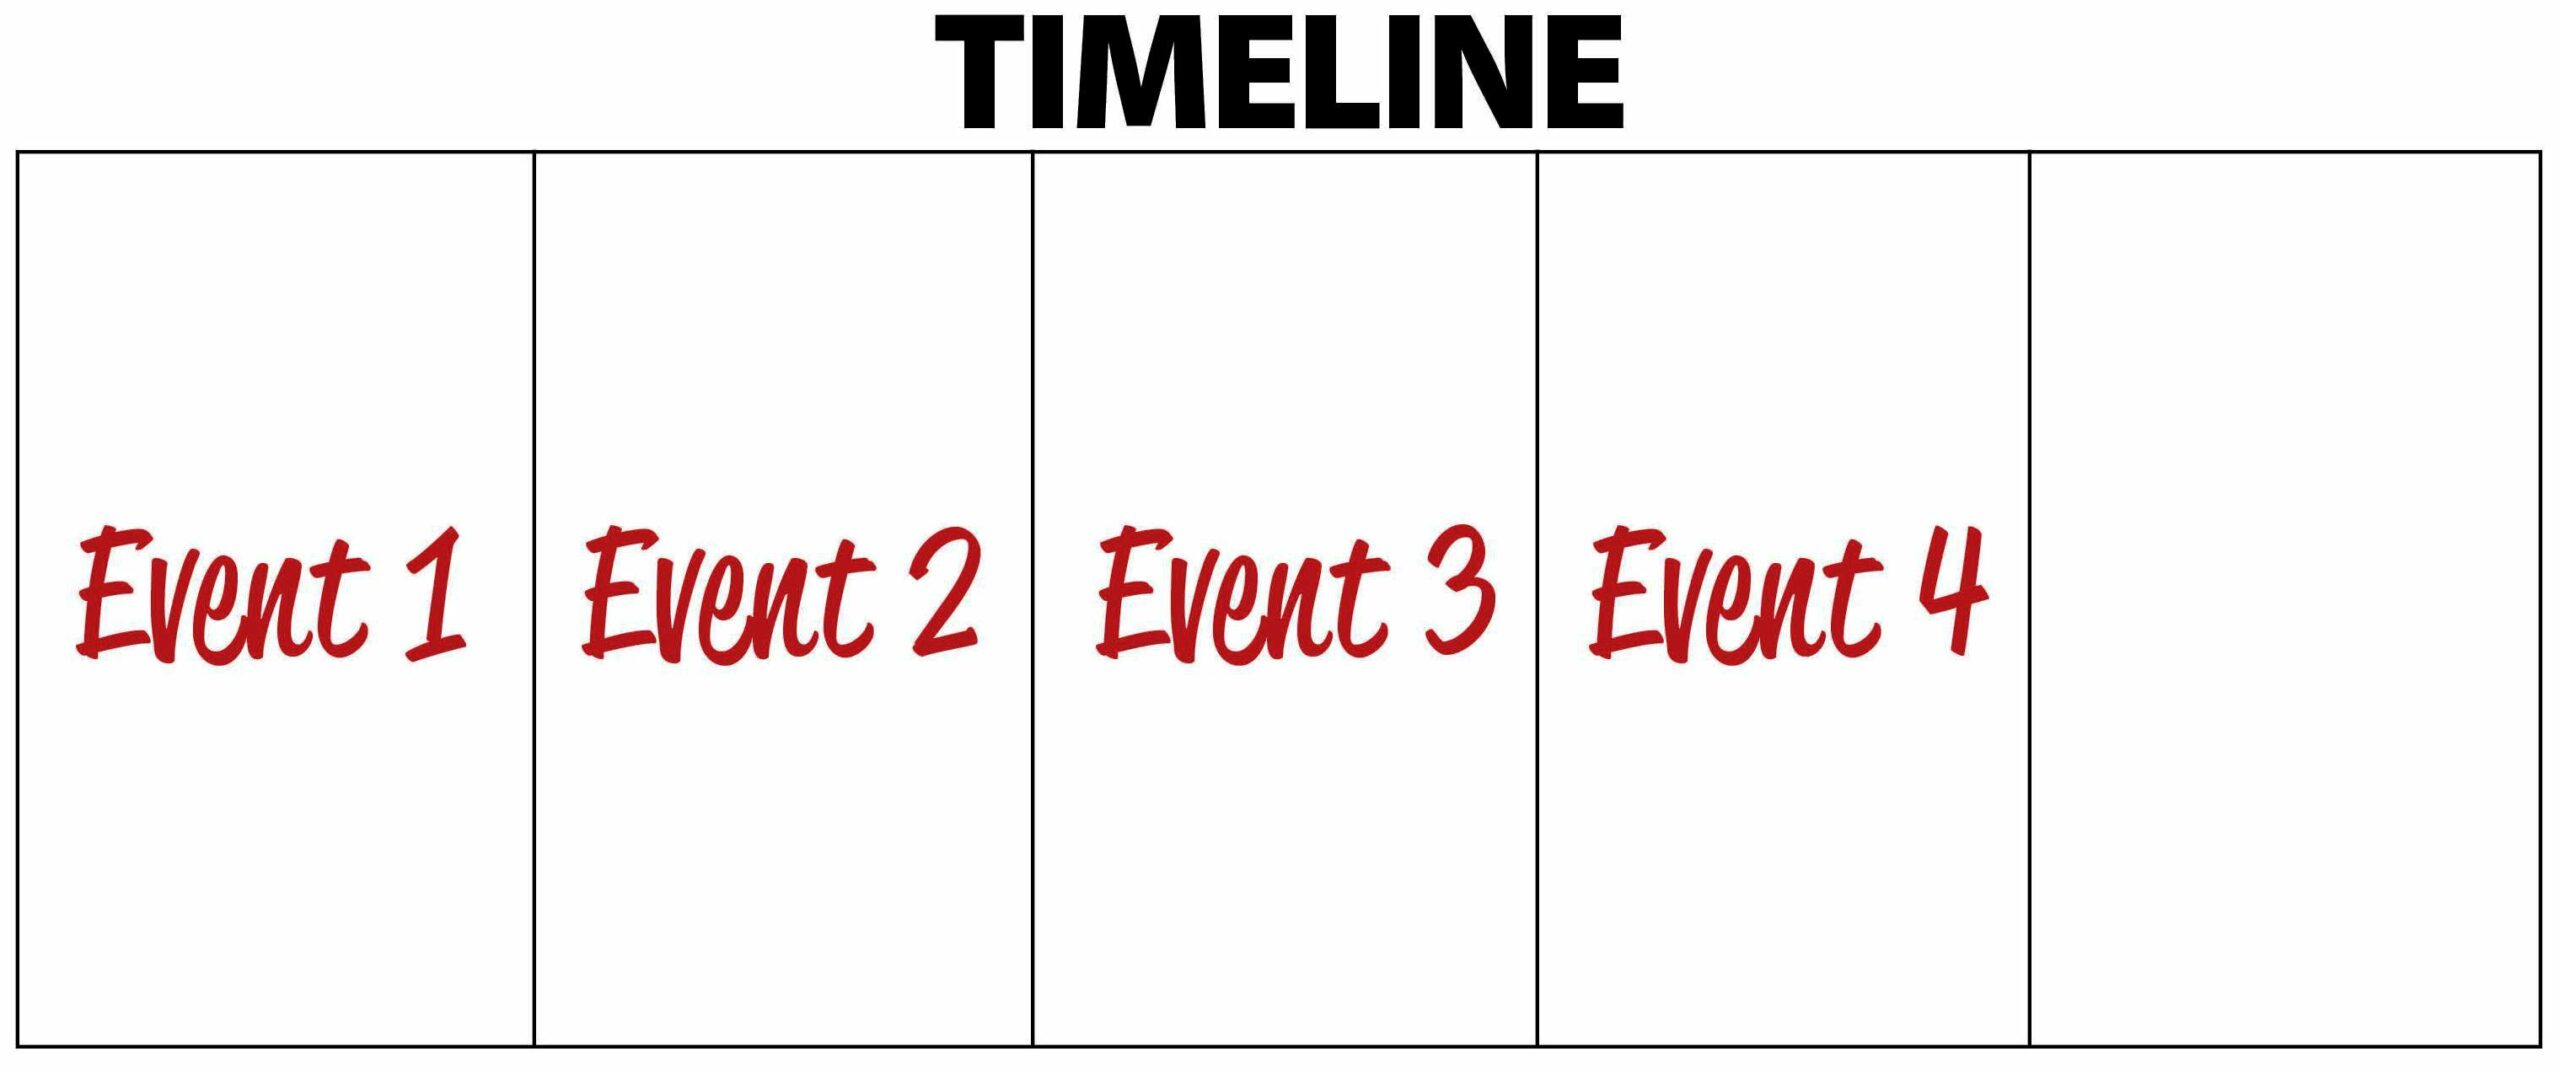 Timeline - Event Example